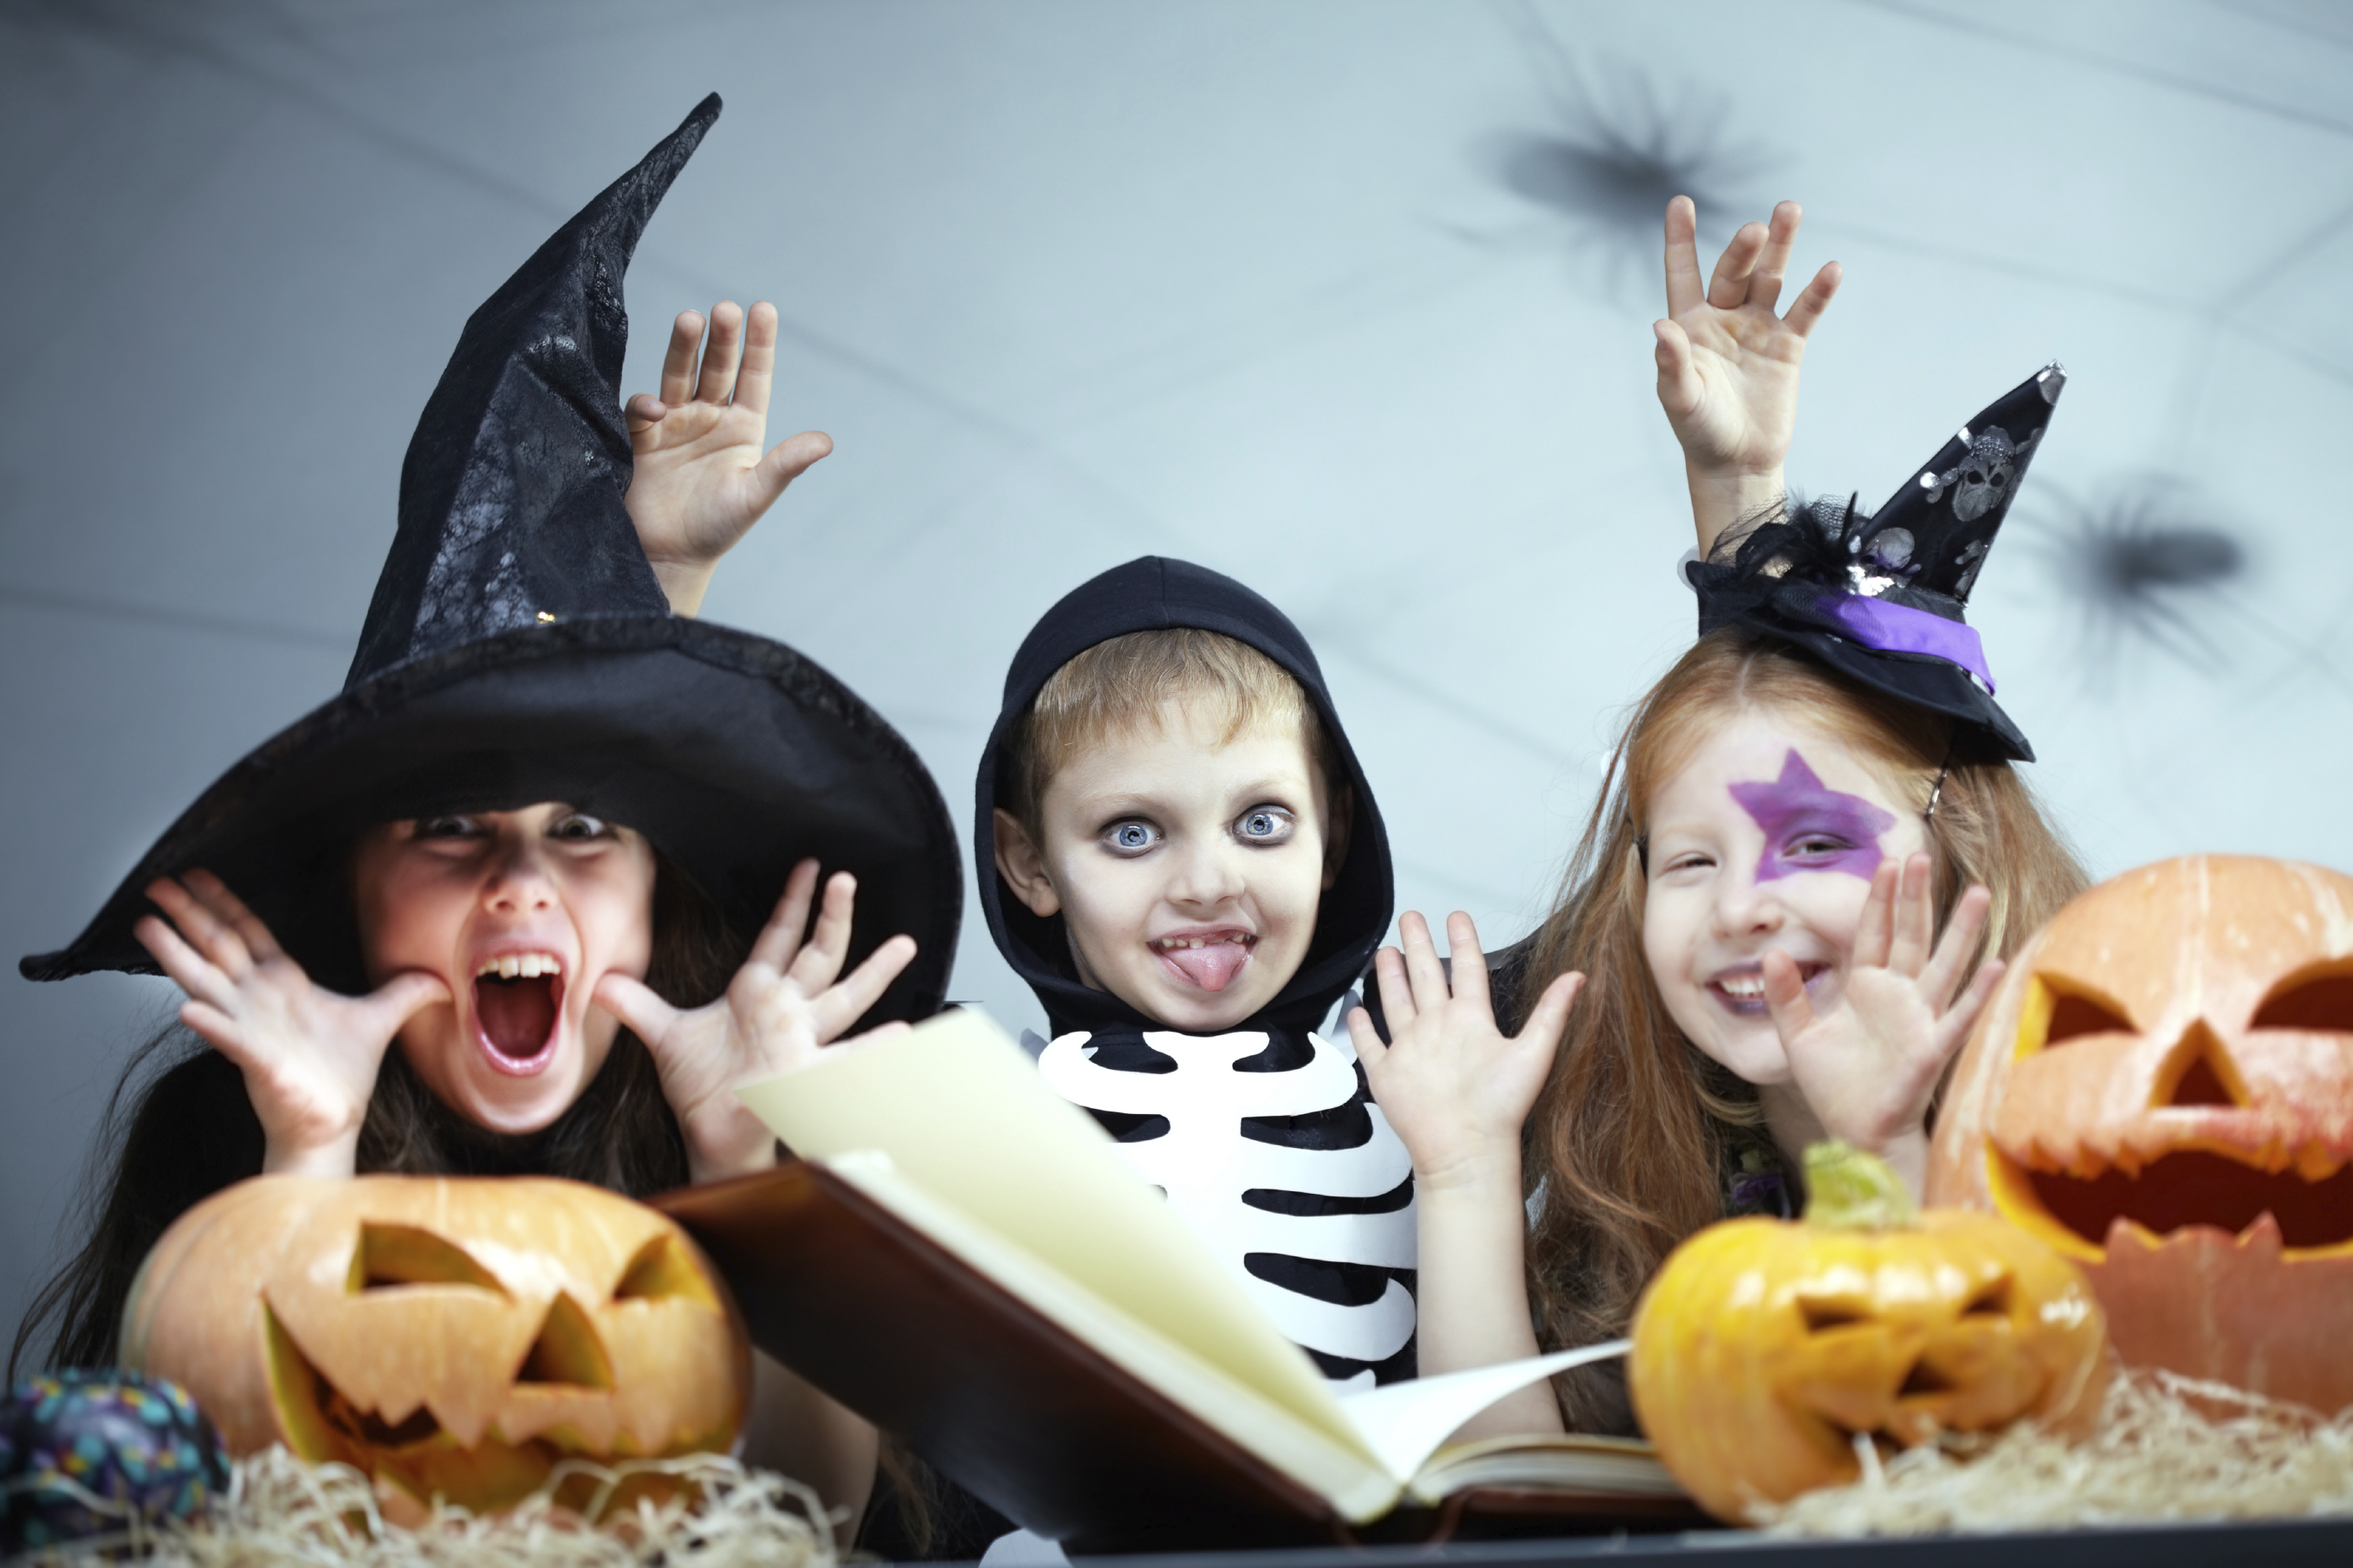 Children in Halloween fancy dress costumes